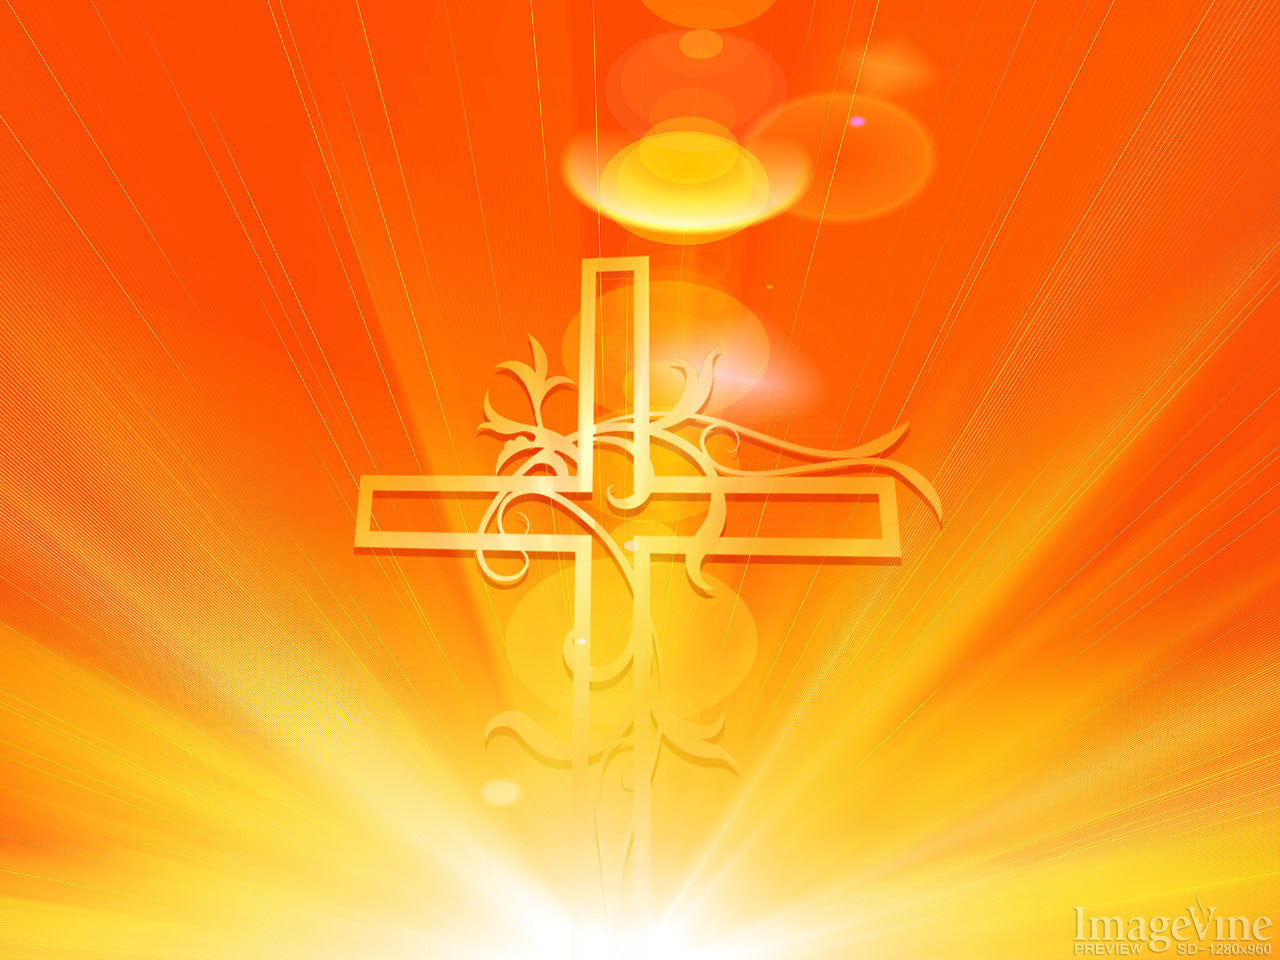 Simple Cross Backgrounds Imagevine